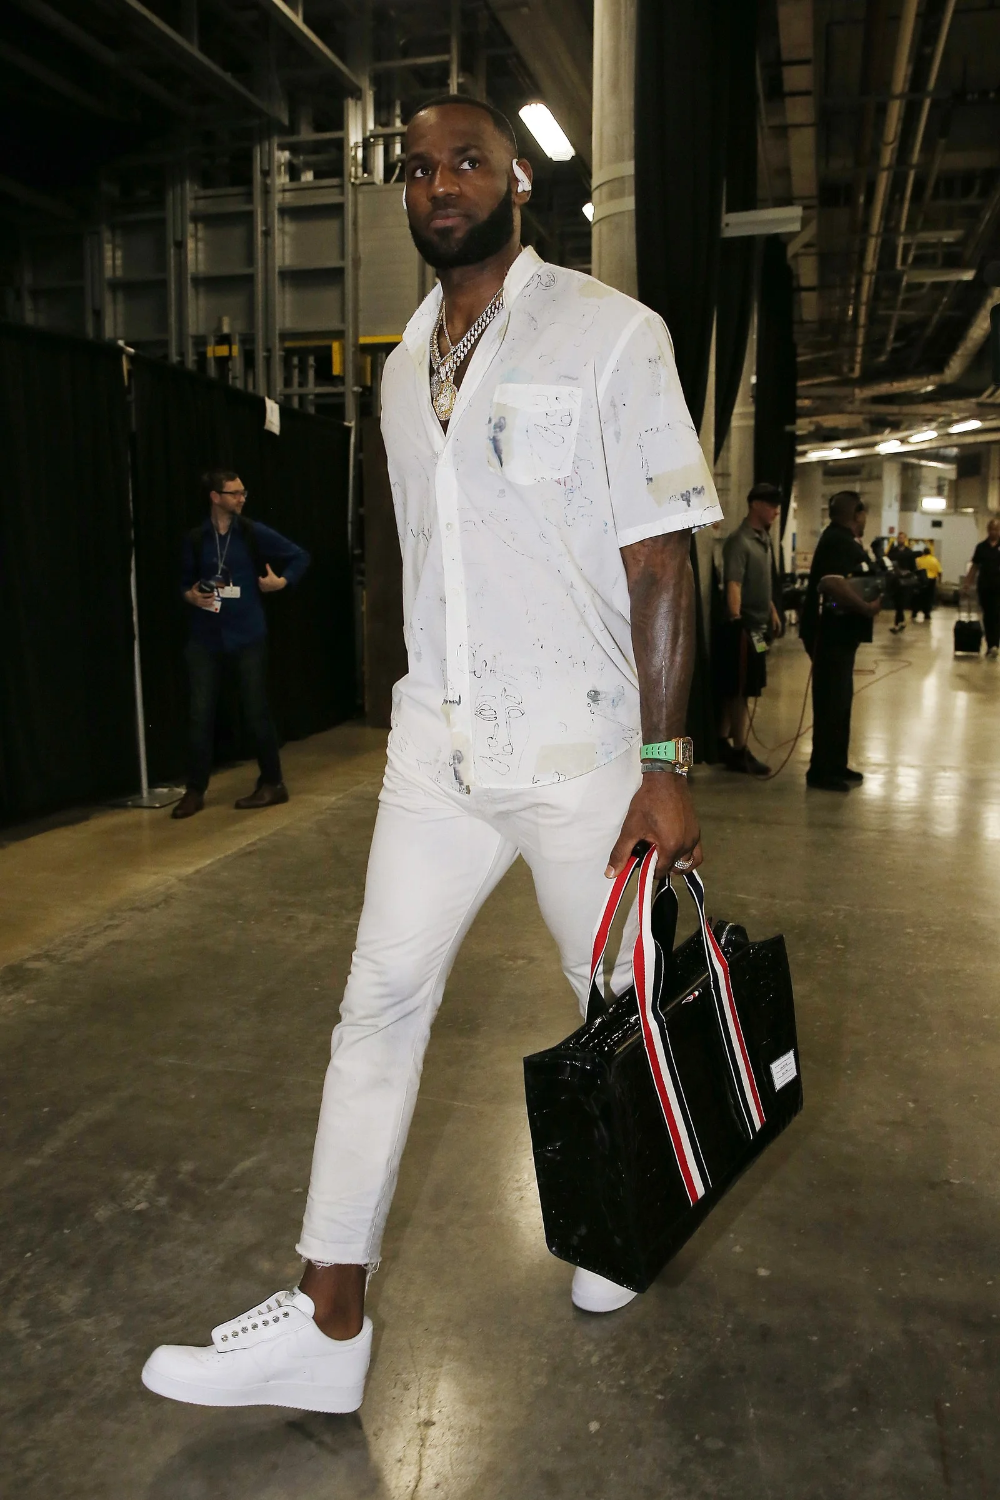 The 10 Best Dressed Men Of The Week Nba Fashion Best Dressed Man Nba Outfit [ 1500 x 1000 Pixel ]